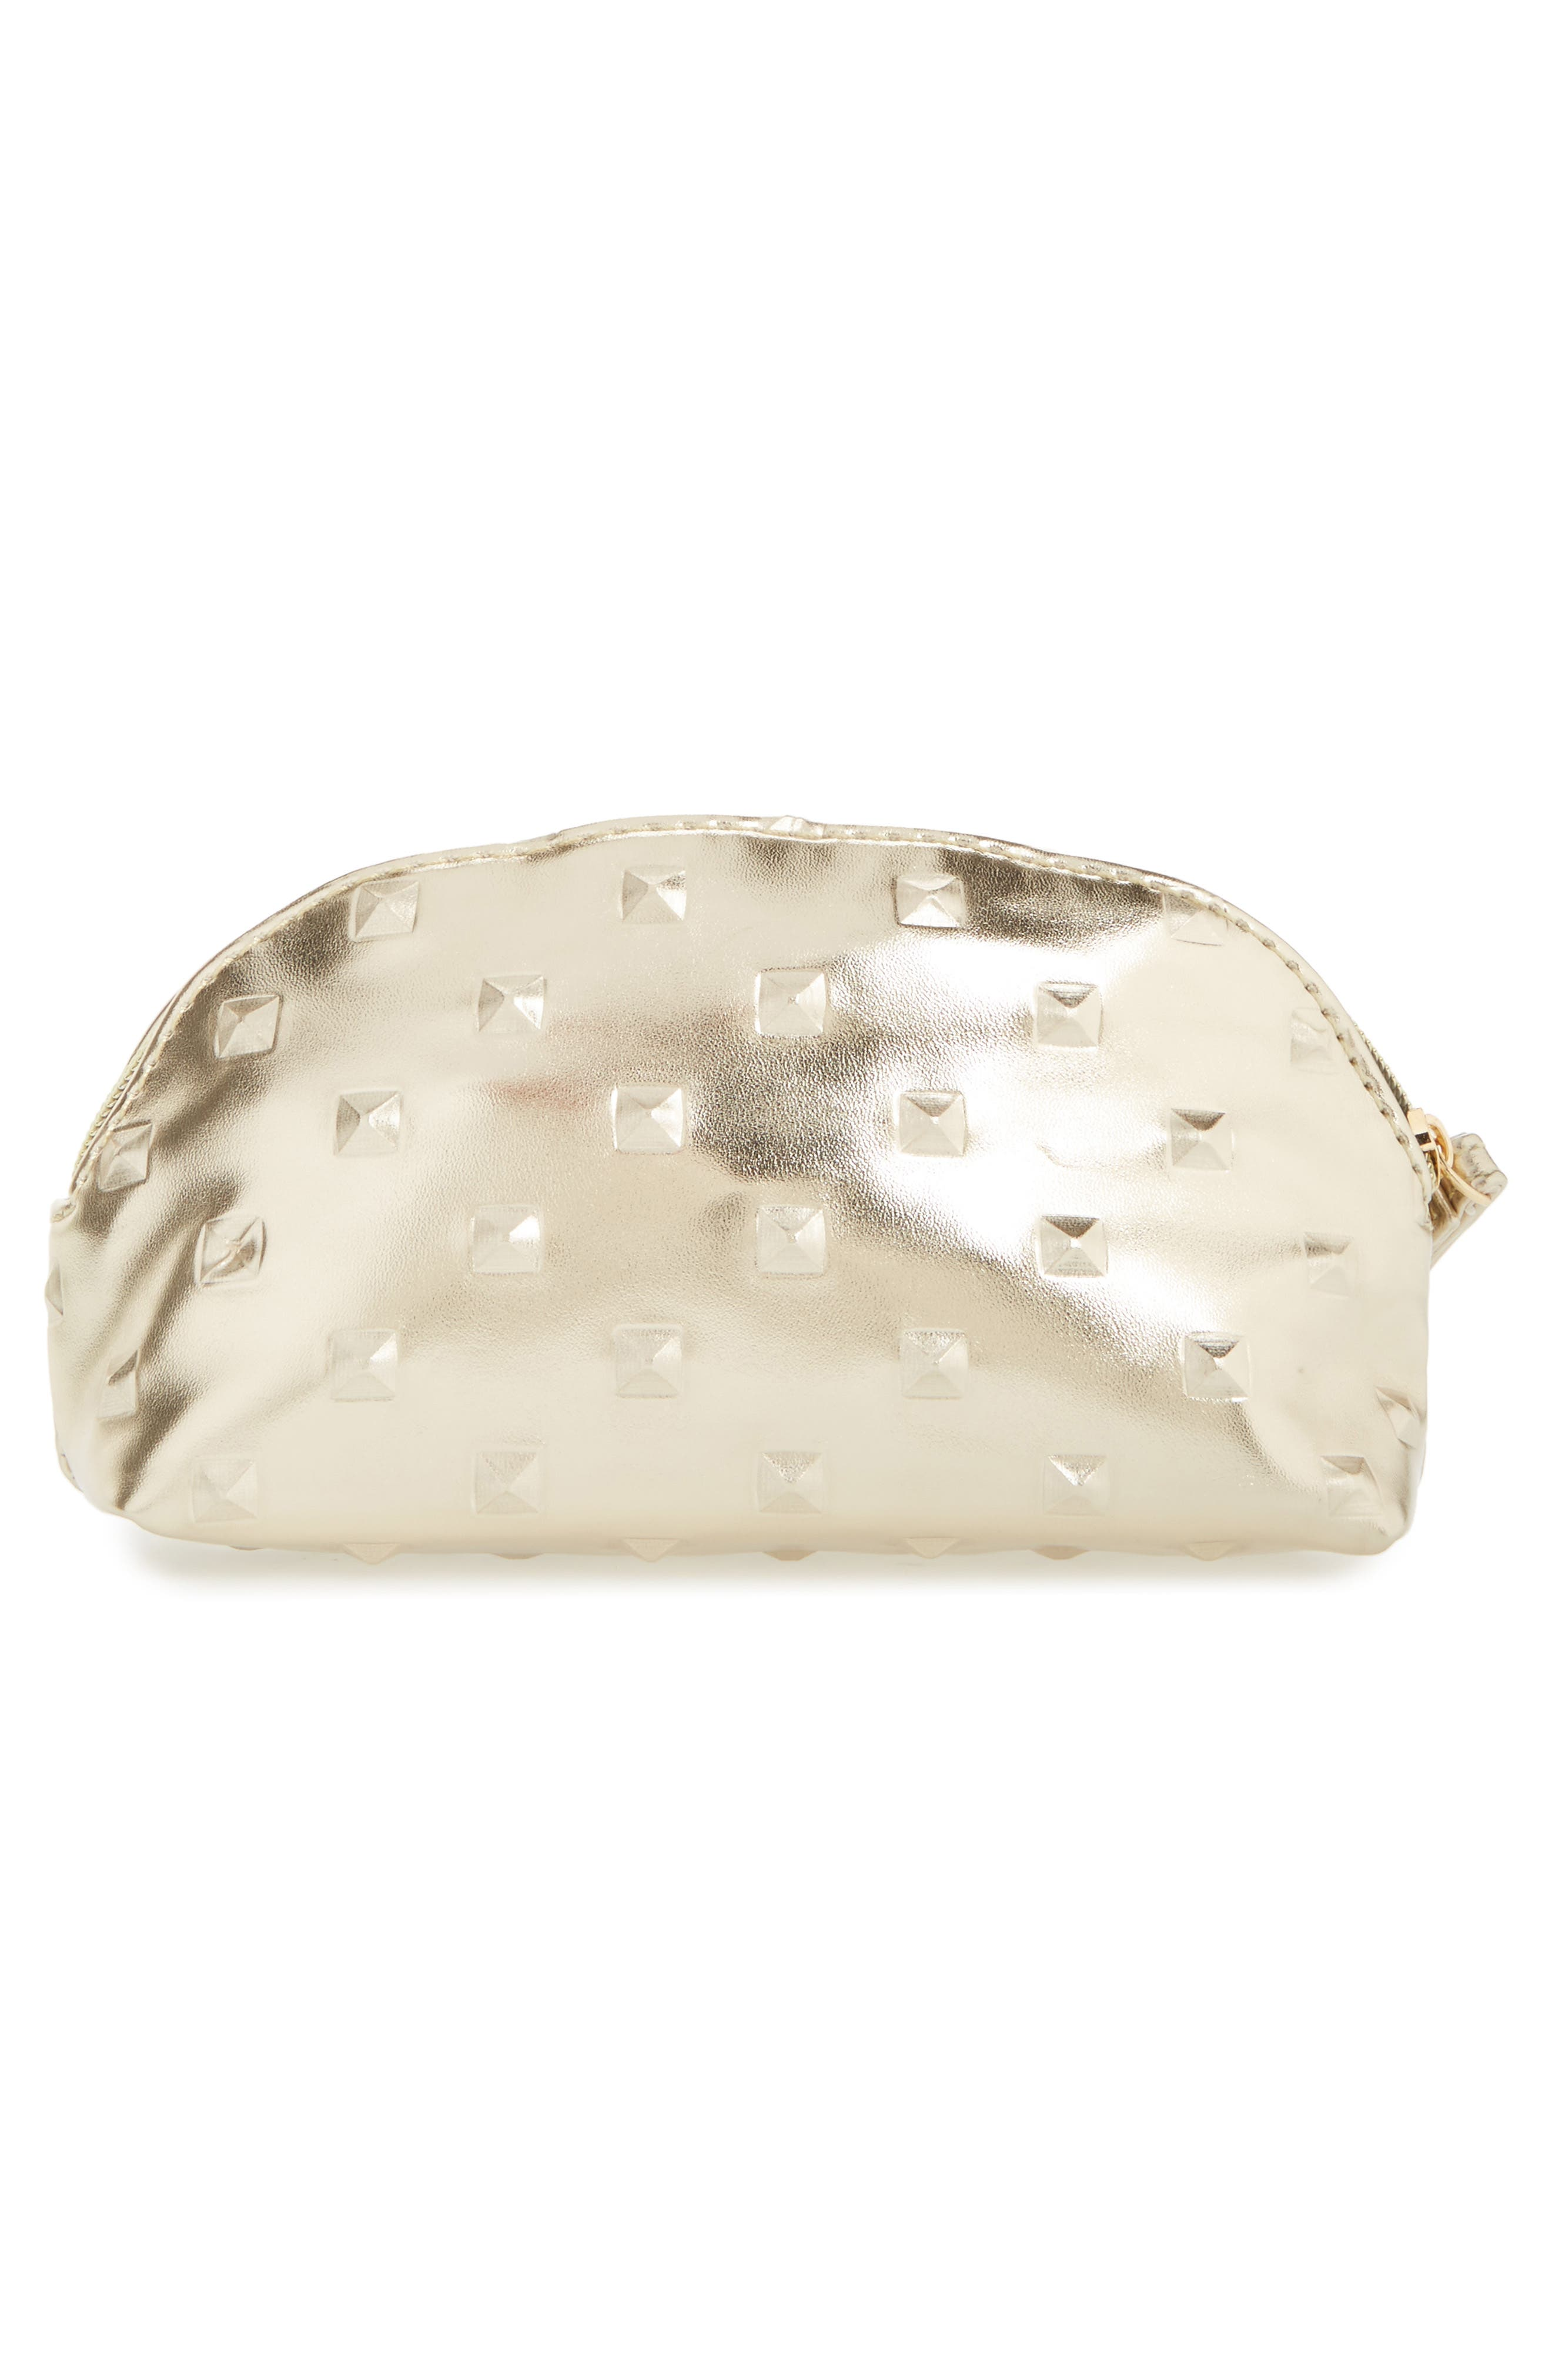 Diamond Embossed Metallic Cosmetics Bag,                             Alternate thumbnail 2, color,